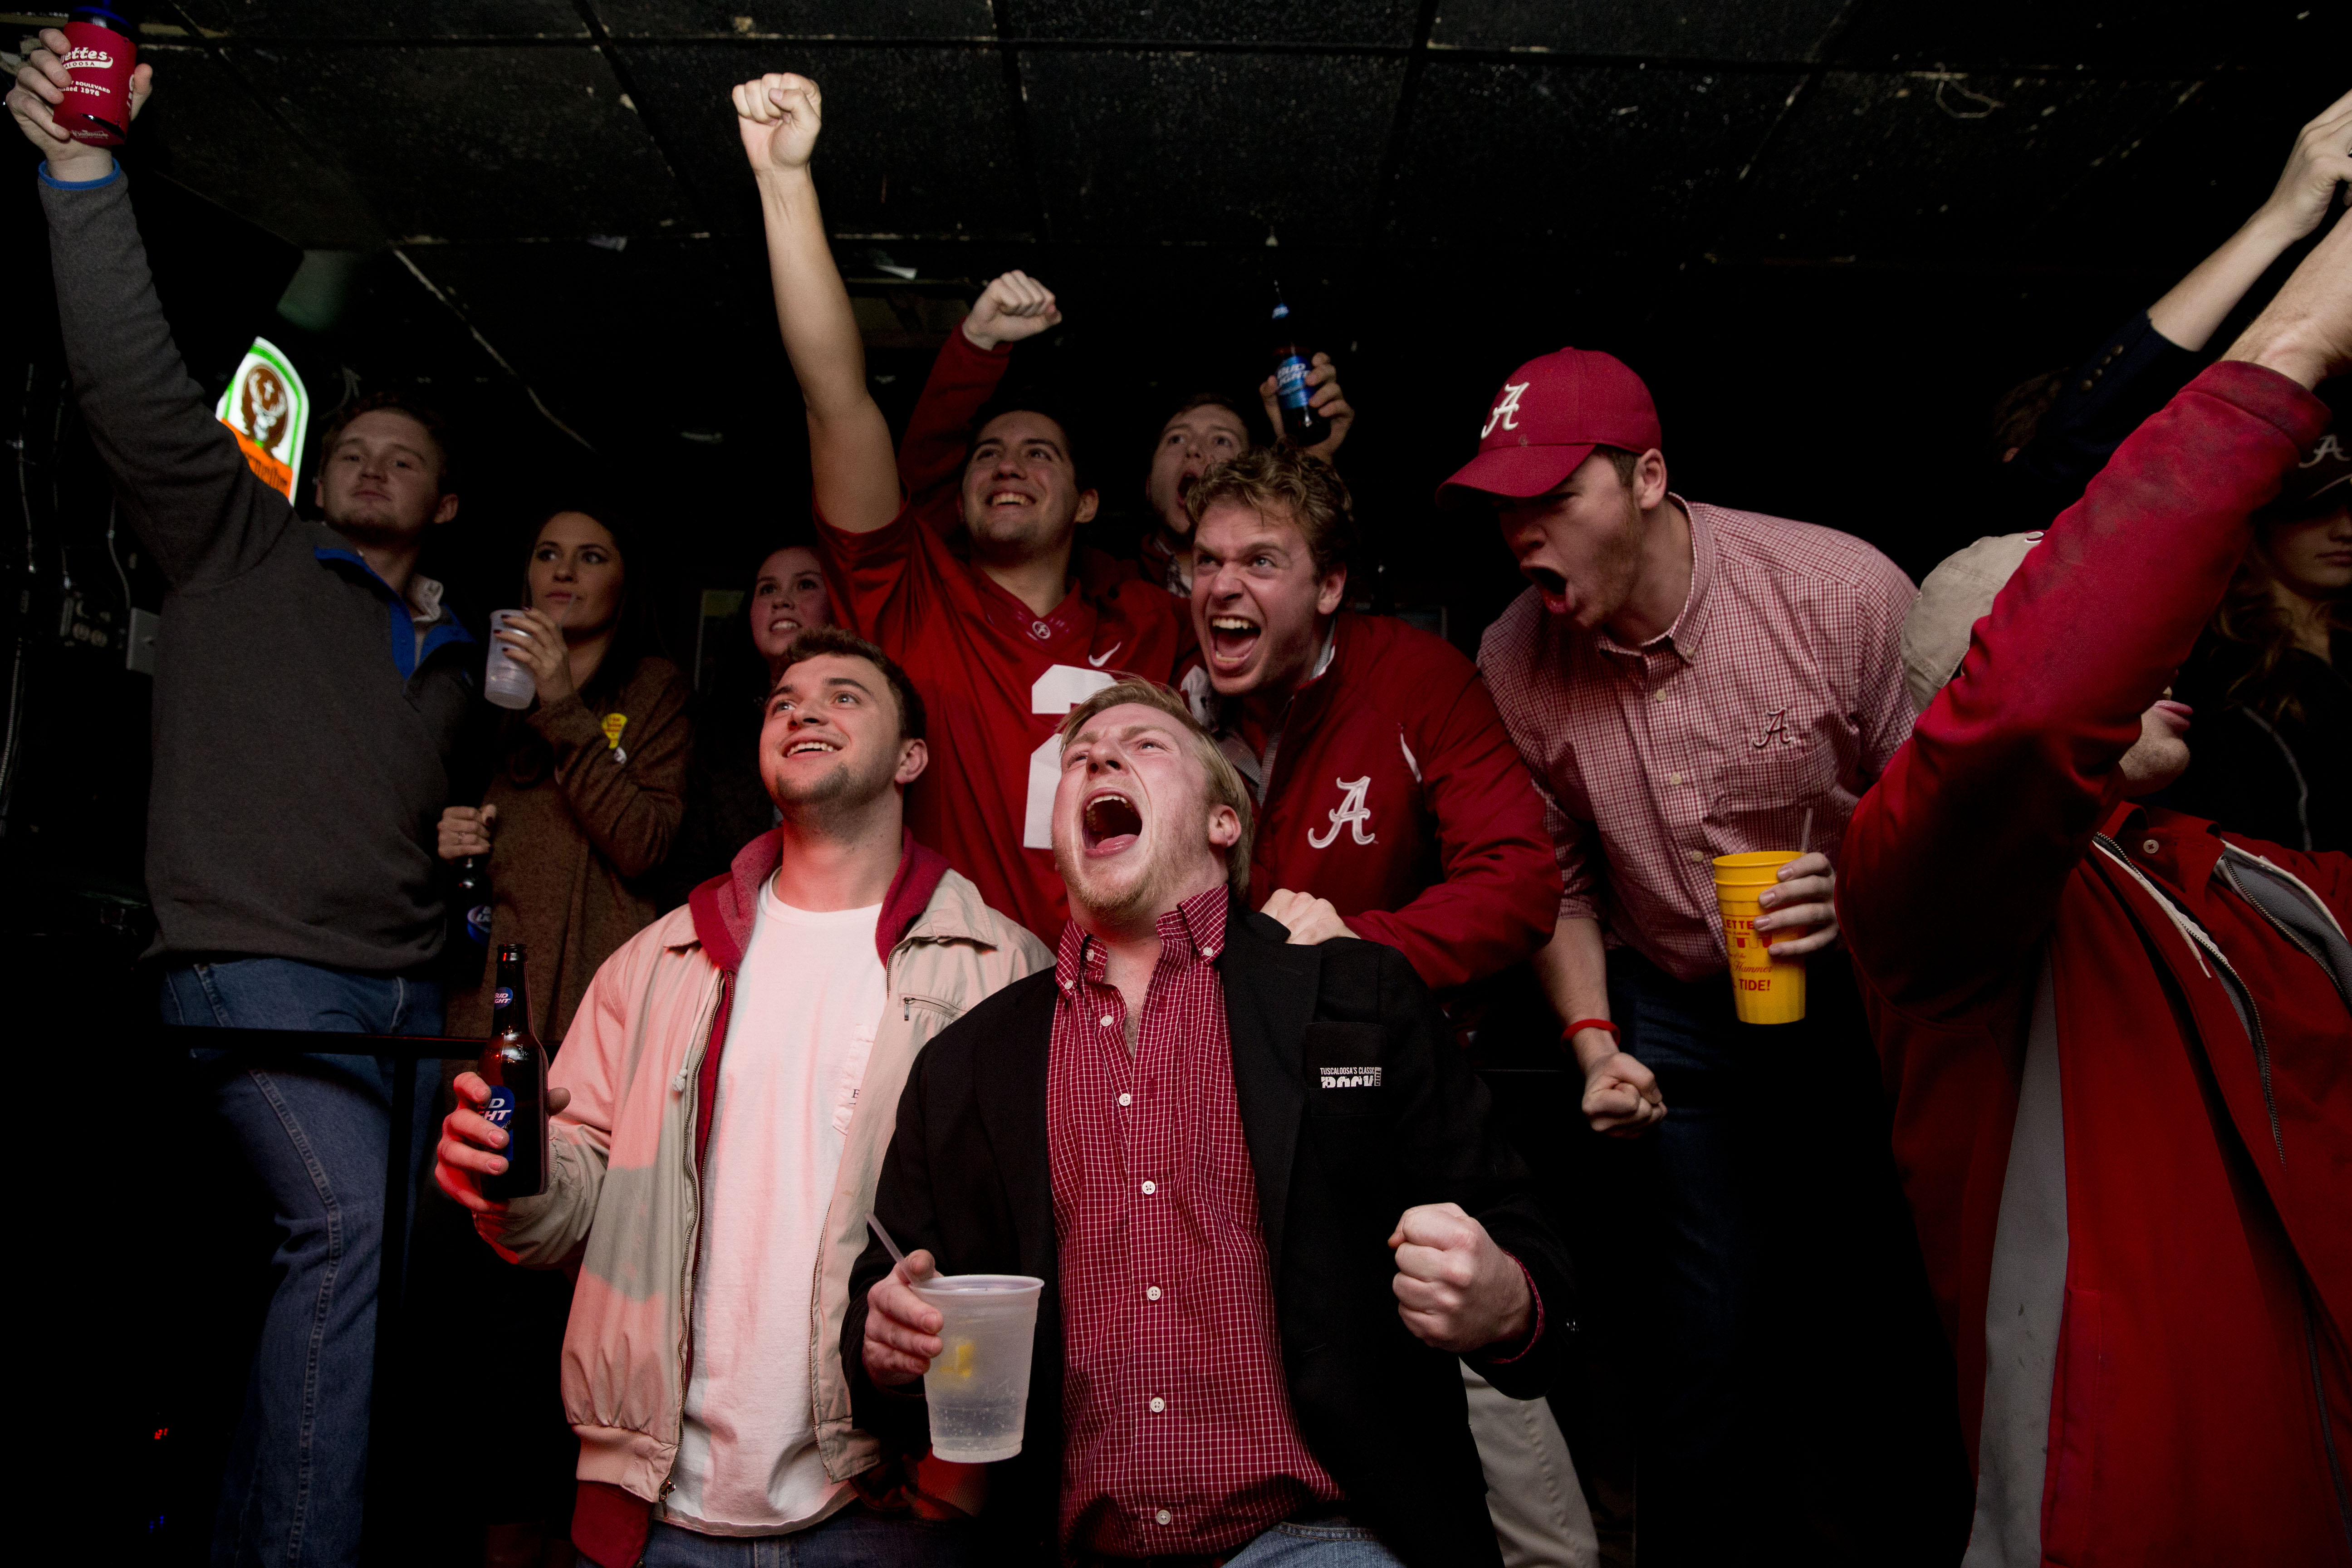 Alabama fans, Joe Kazoiw, center, 22, of Atlanta, Bruce Gurnowski, left, 21, of Newark, N.J., Zach Soto, back left, 21, of Hoover, Ala., and Mark Smith, back right, 22, of Indianapolis, Ind., cheer after a touchdown during the NCAA college playoff champio